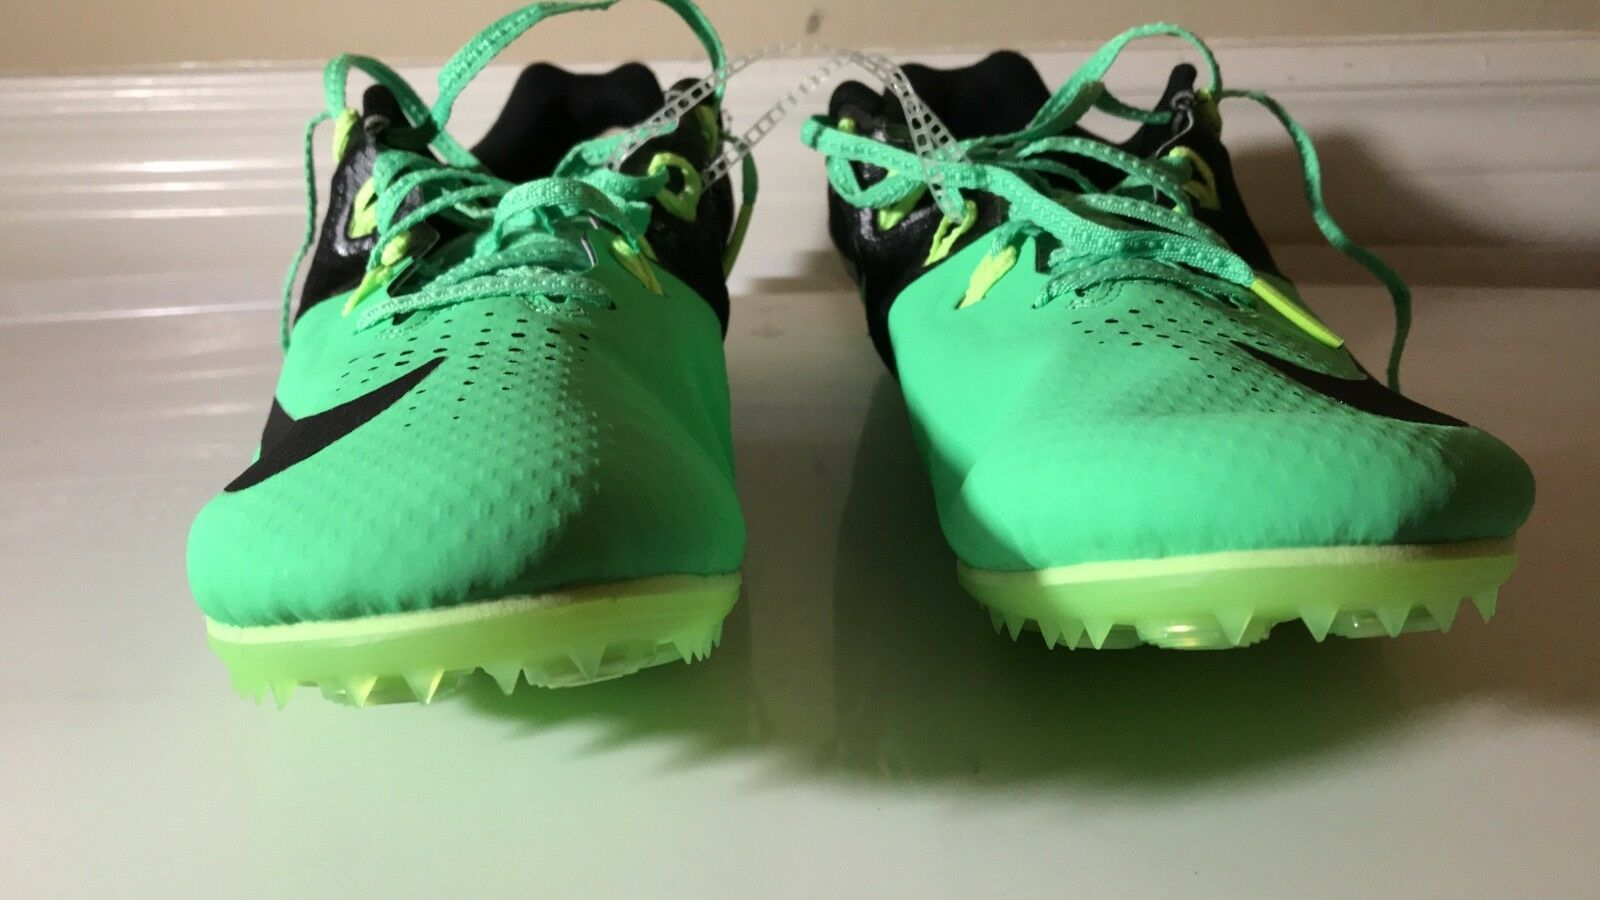 NEW 12 NIKE Zoom Rival S 8 Track Shoes MENS 12 NEW Green Black 806554 303 e708f4